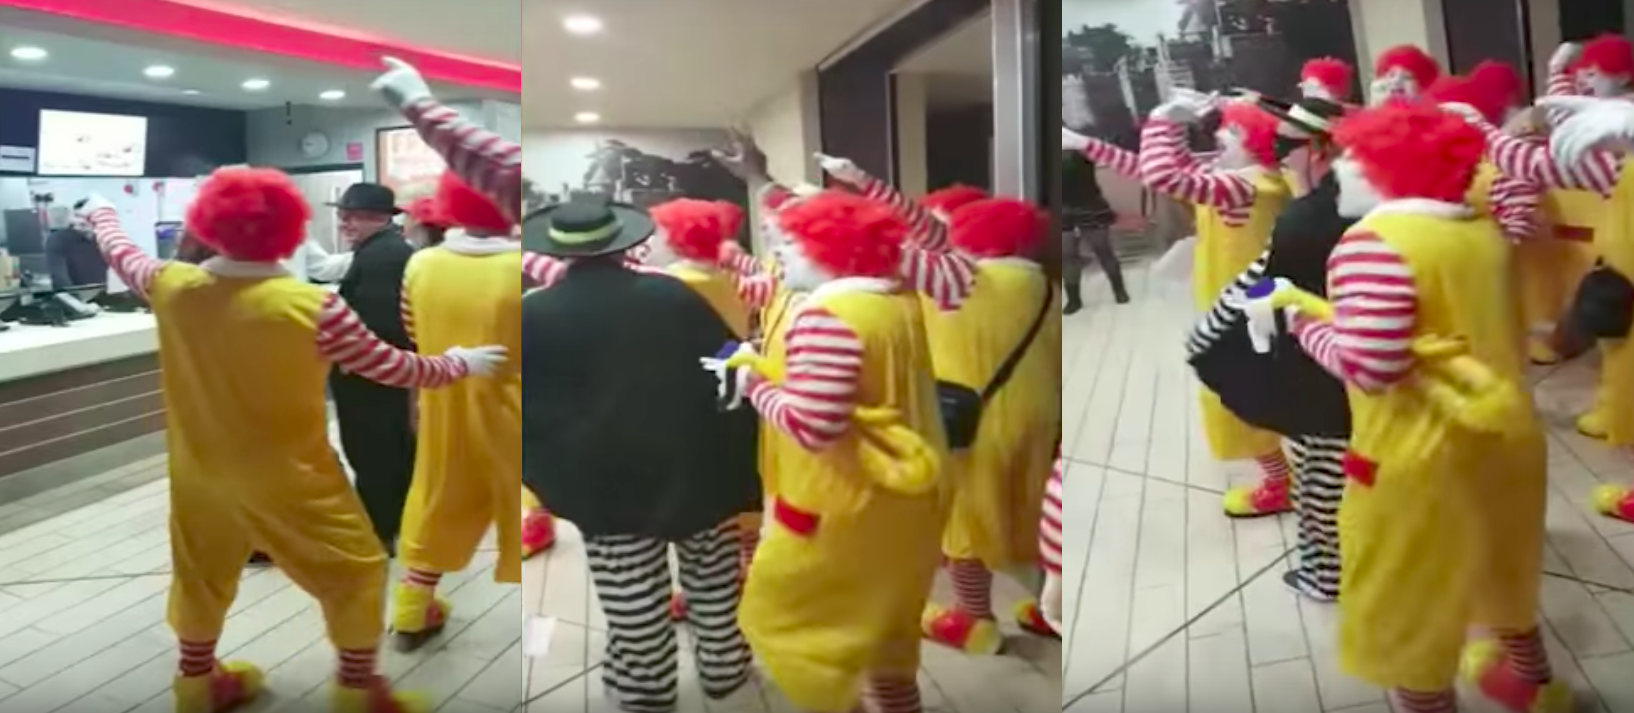 Gang Of Ronald McDonald Clowns Storms Burger King, Taunting Workers